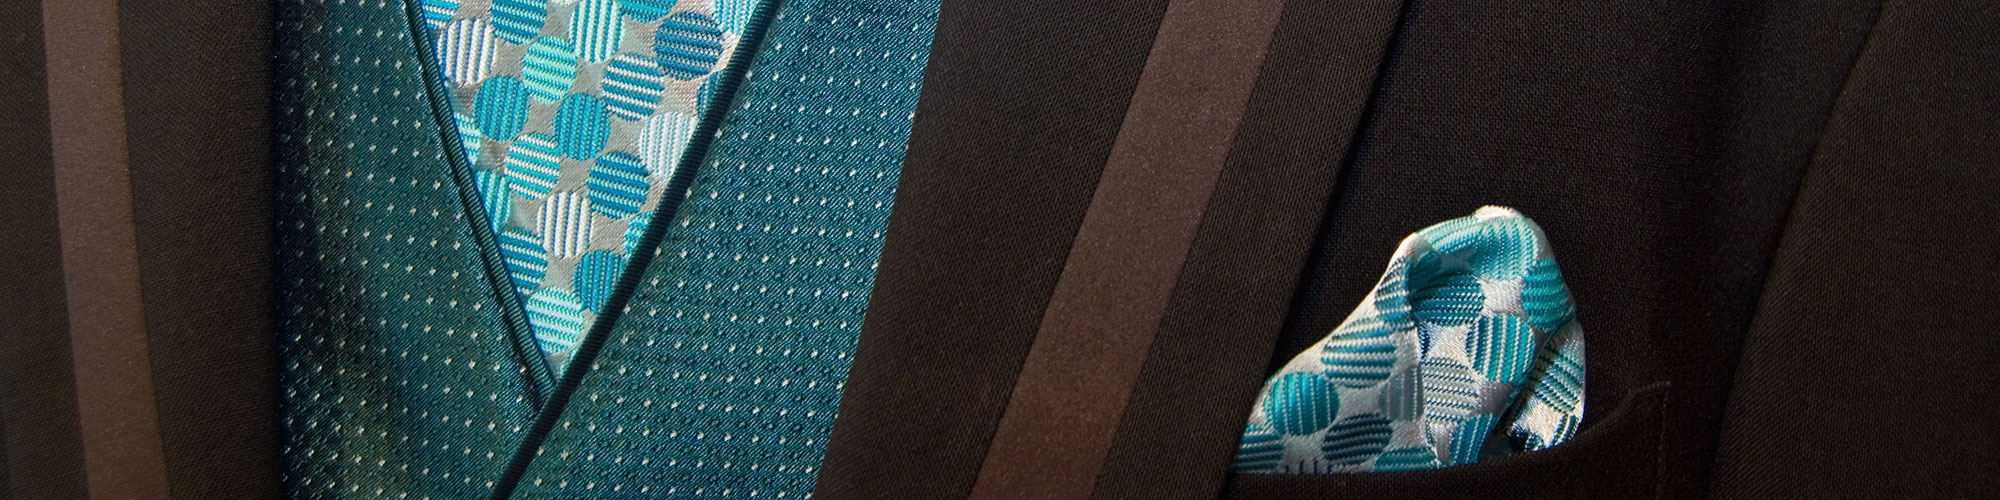 Close Up of Vest, Tie, and Pocket Square